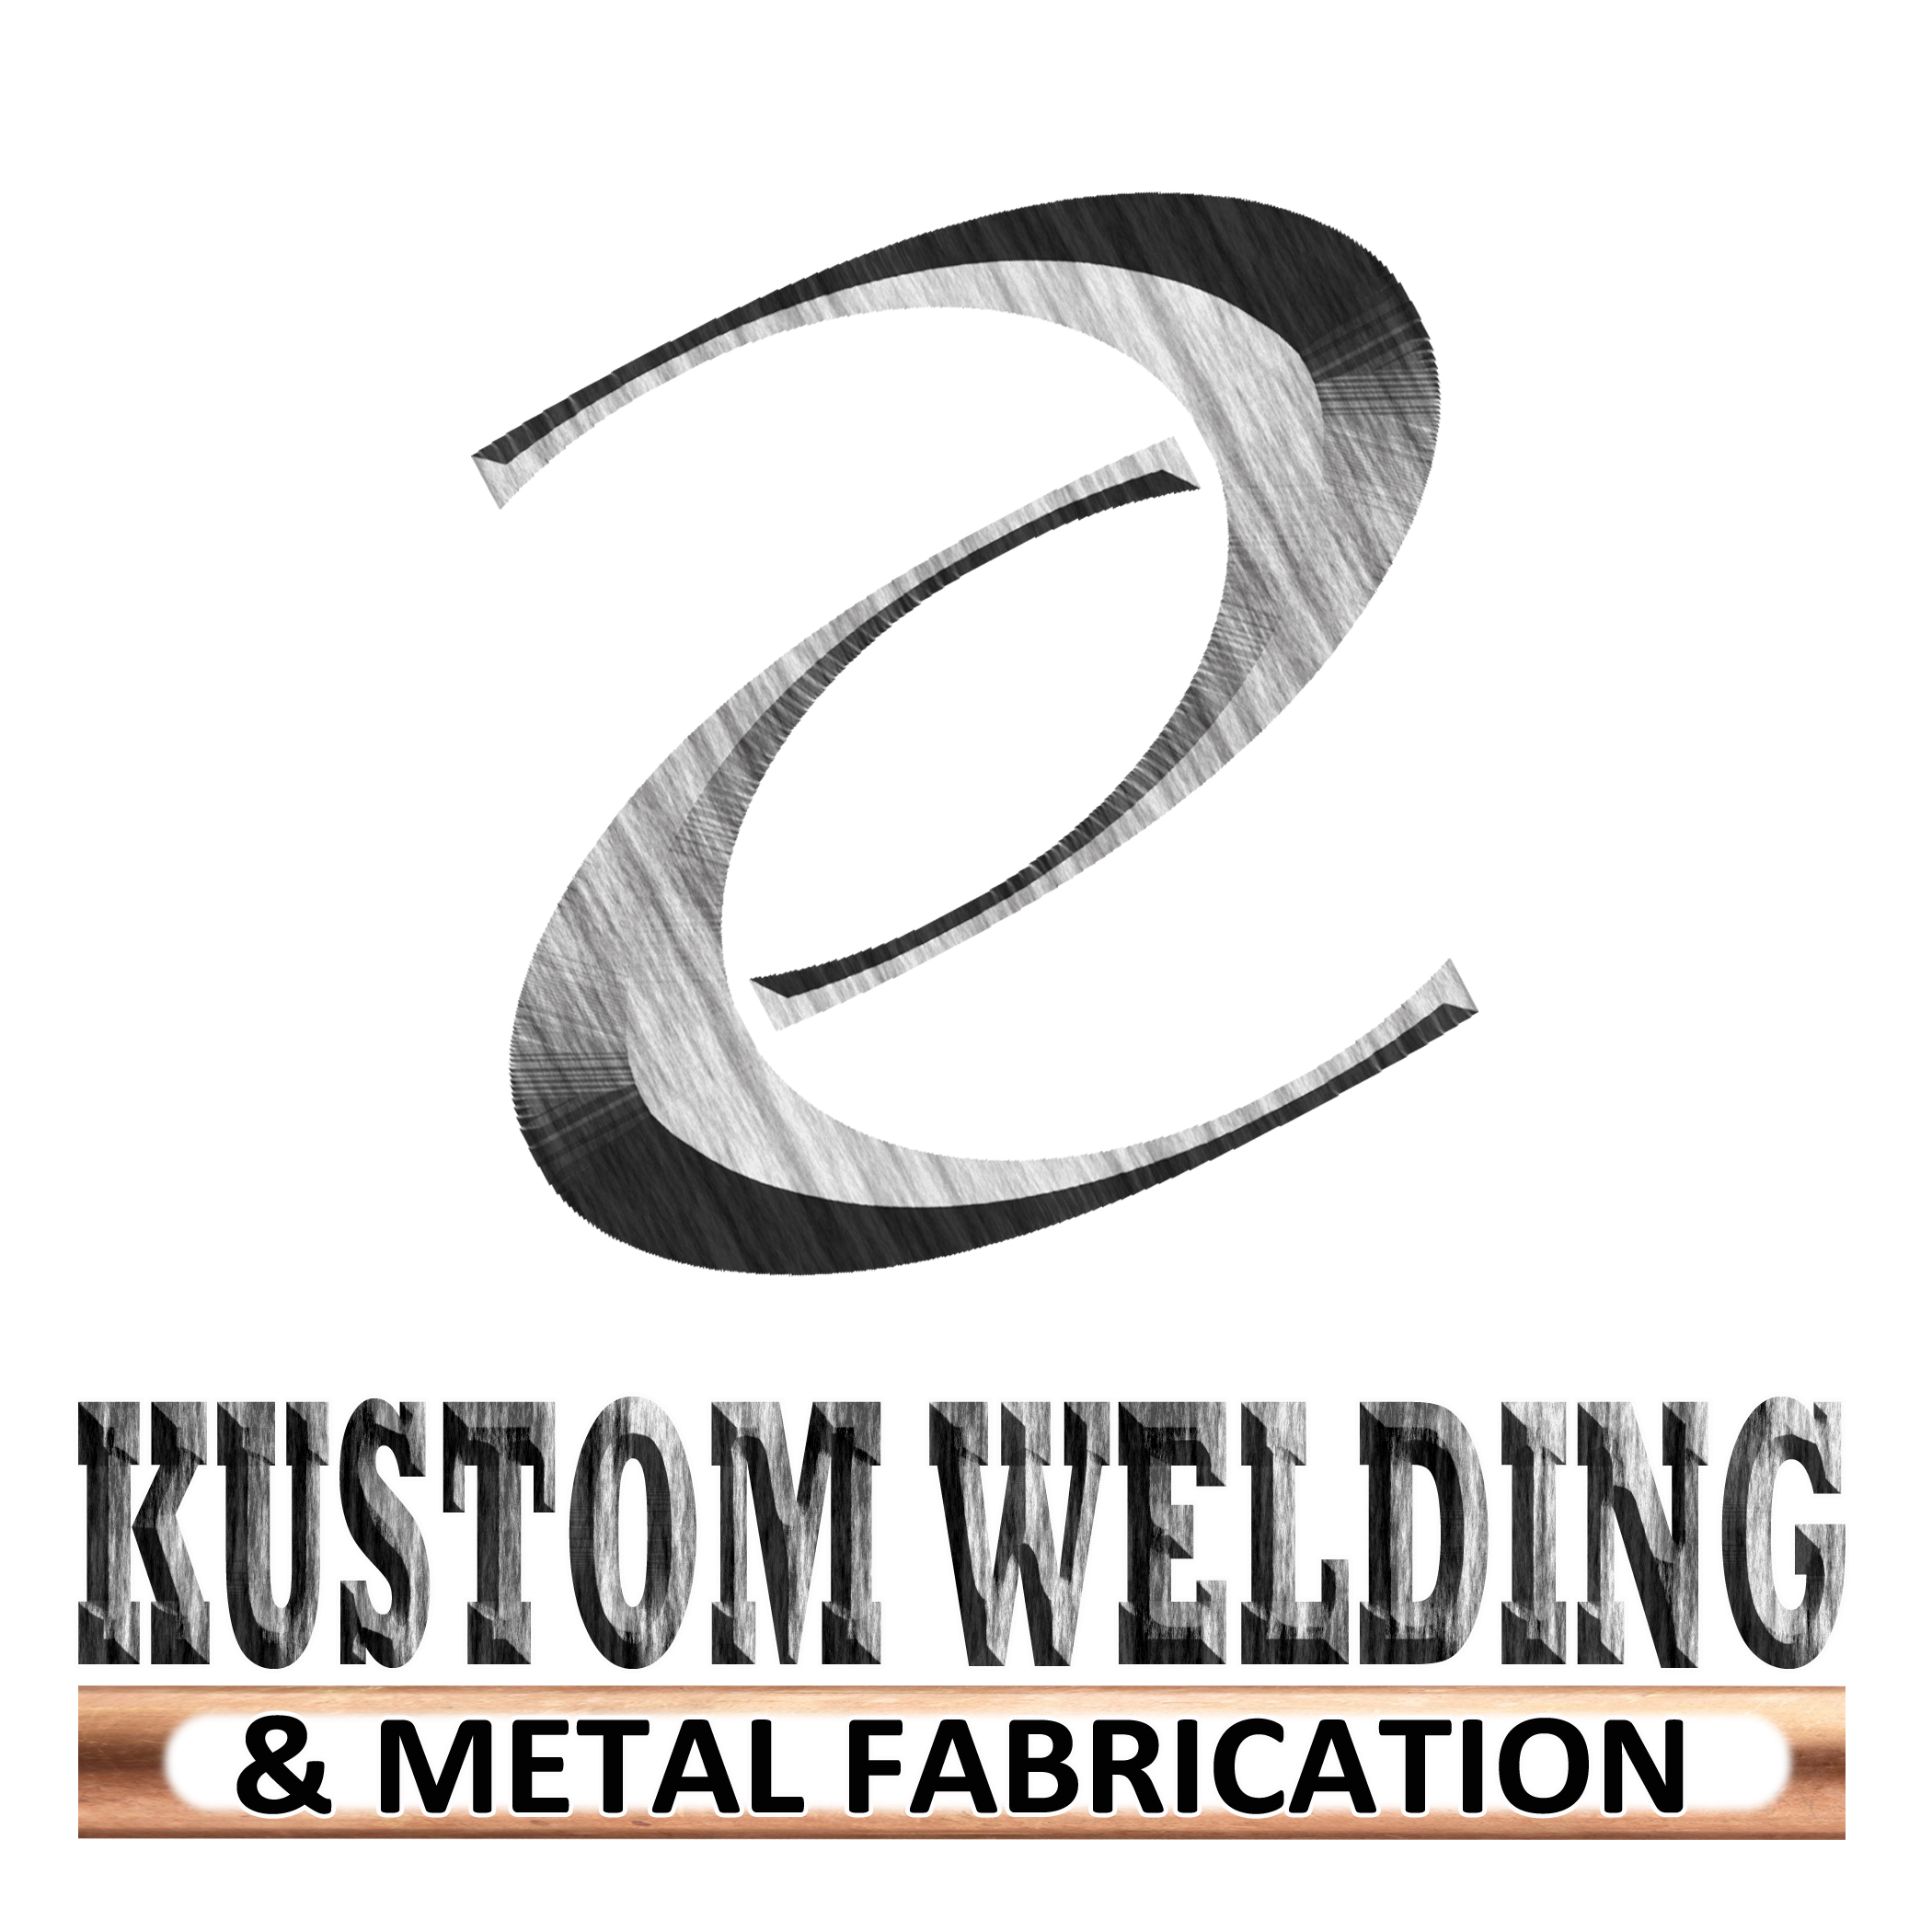 Logo Design by Kitz Malinao - Entry No. 15 in the Logo Design Contest Imaginative Logo Design for DC KUSTOM WELDING & METAL FABRICATION.